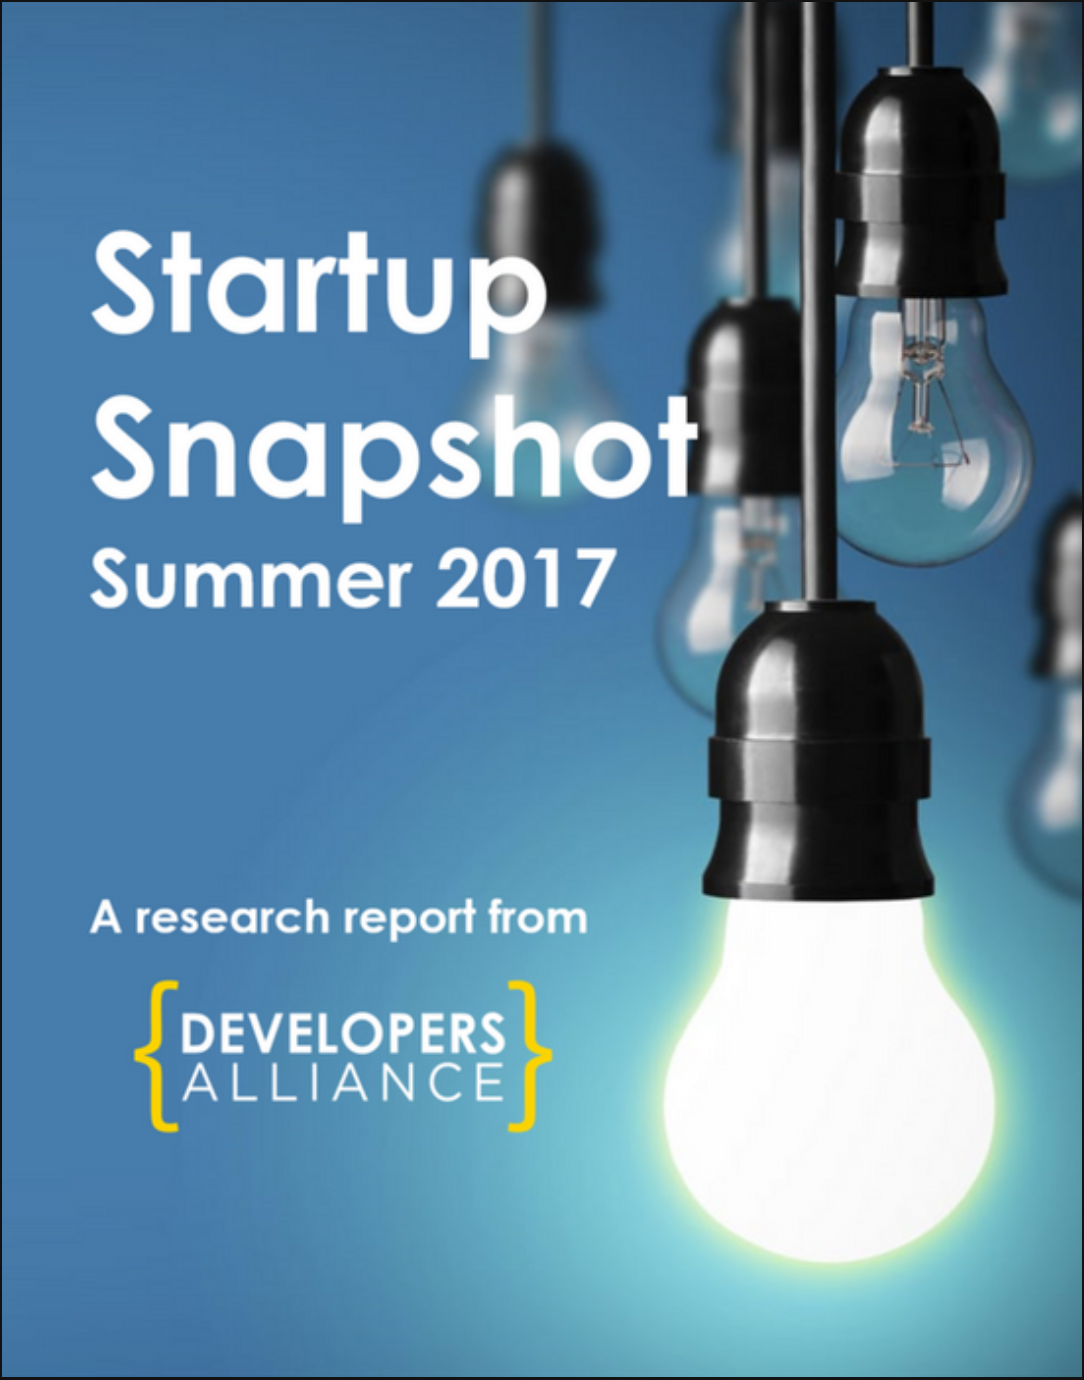 startup snapshot cover.PNG